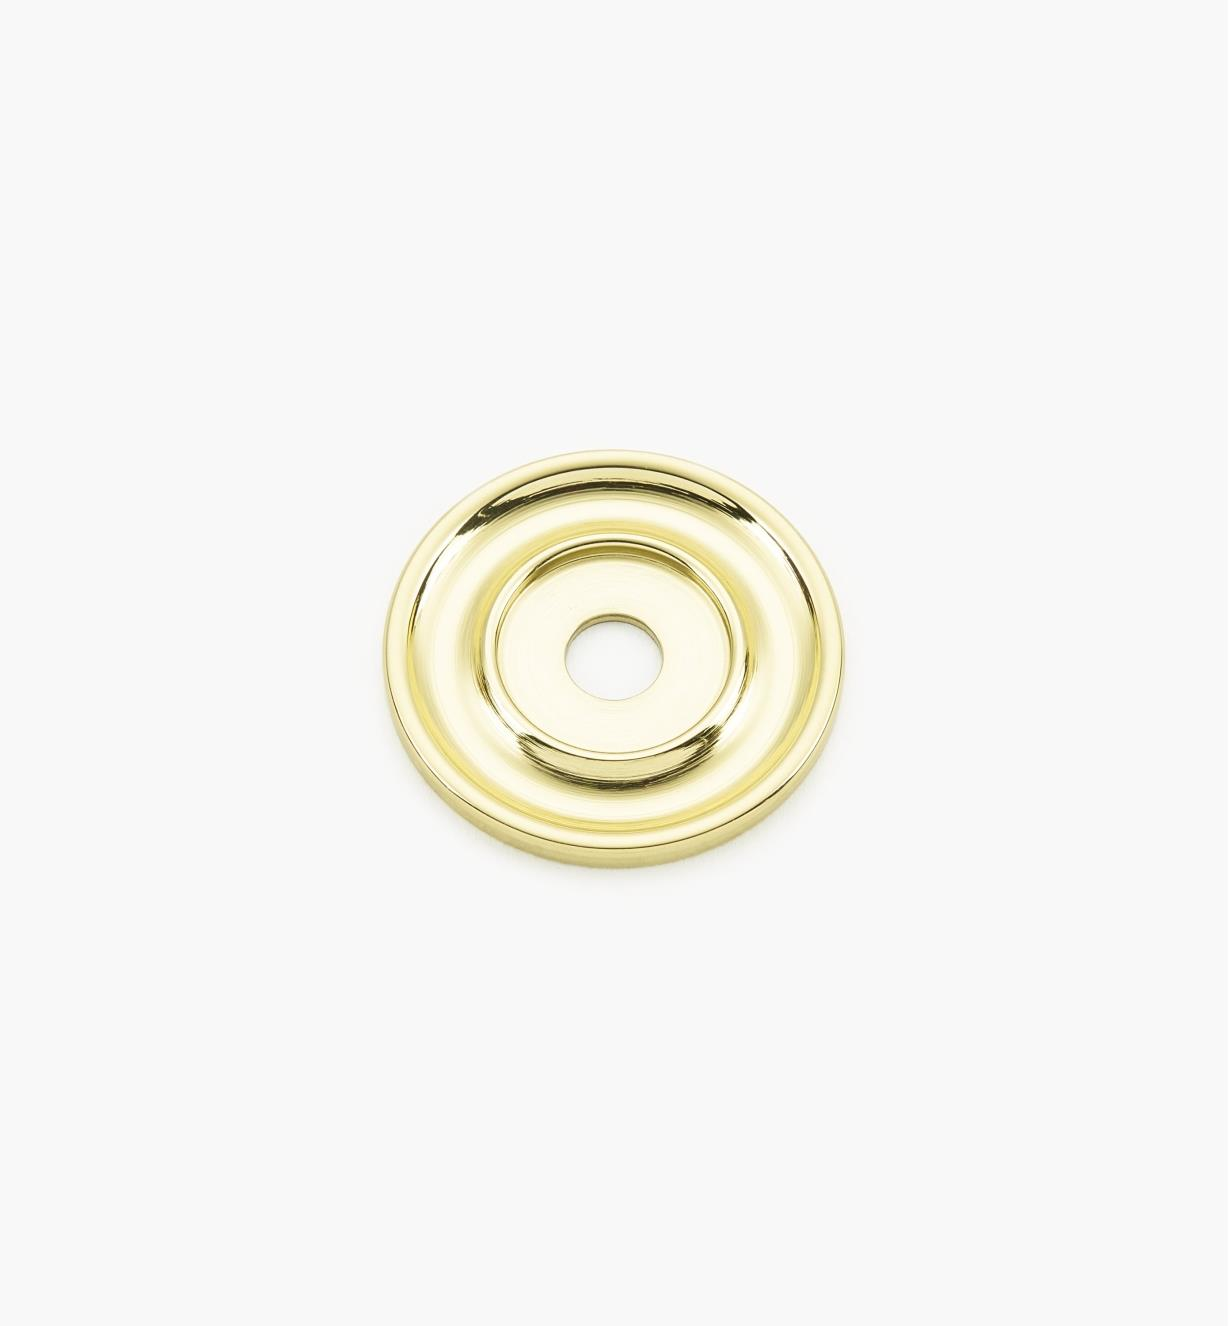 "02W3210 - Polished Brass Suite - 1 1/4"" Knob Escutcheons"